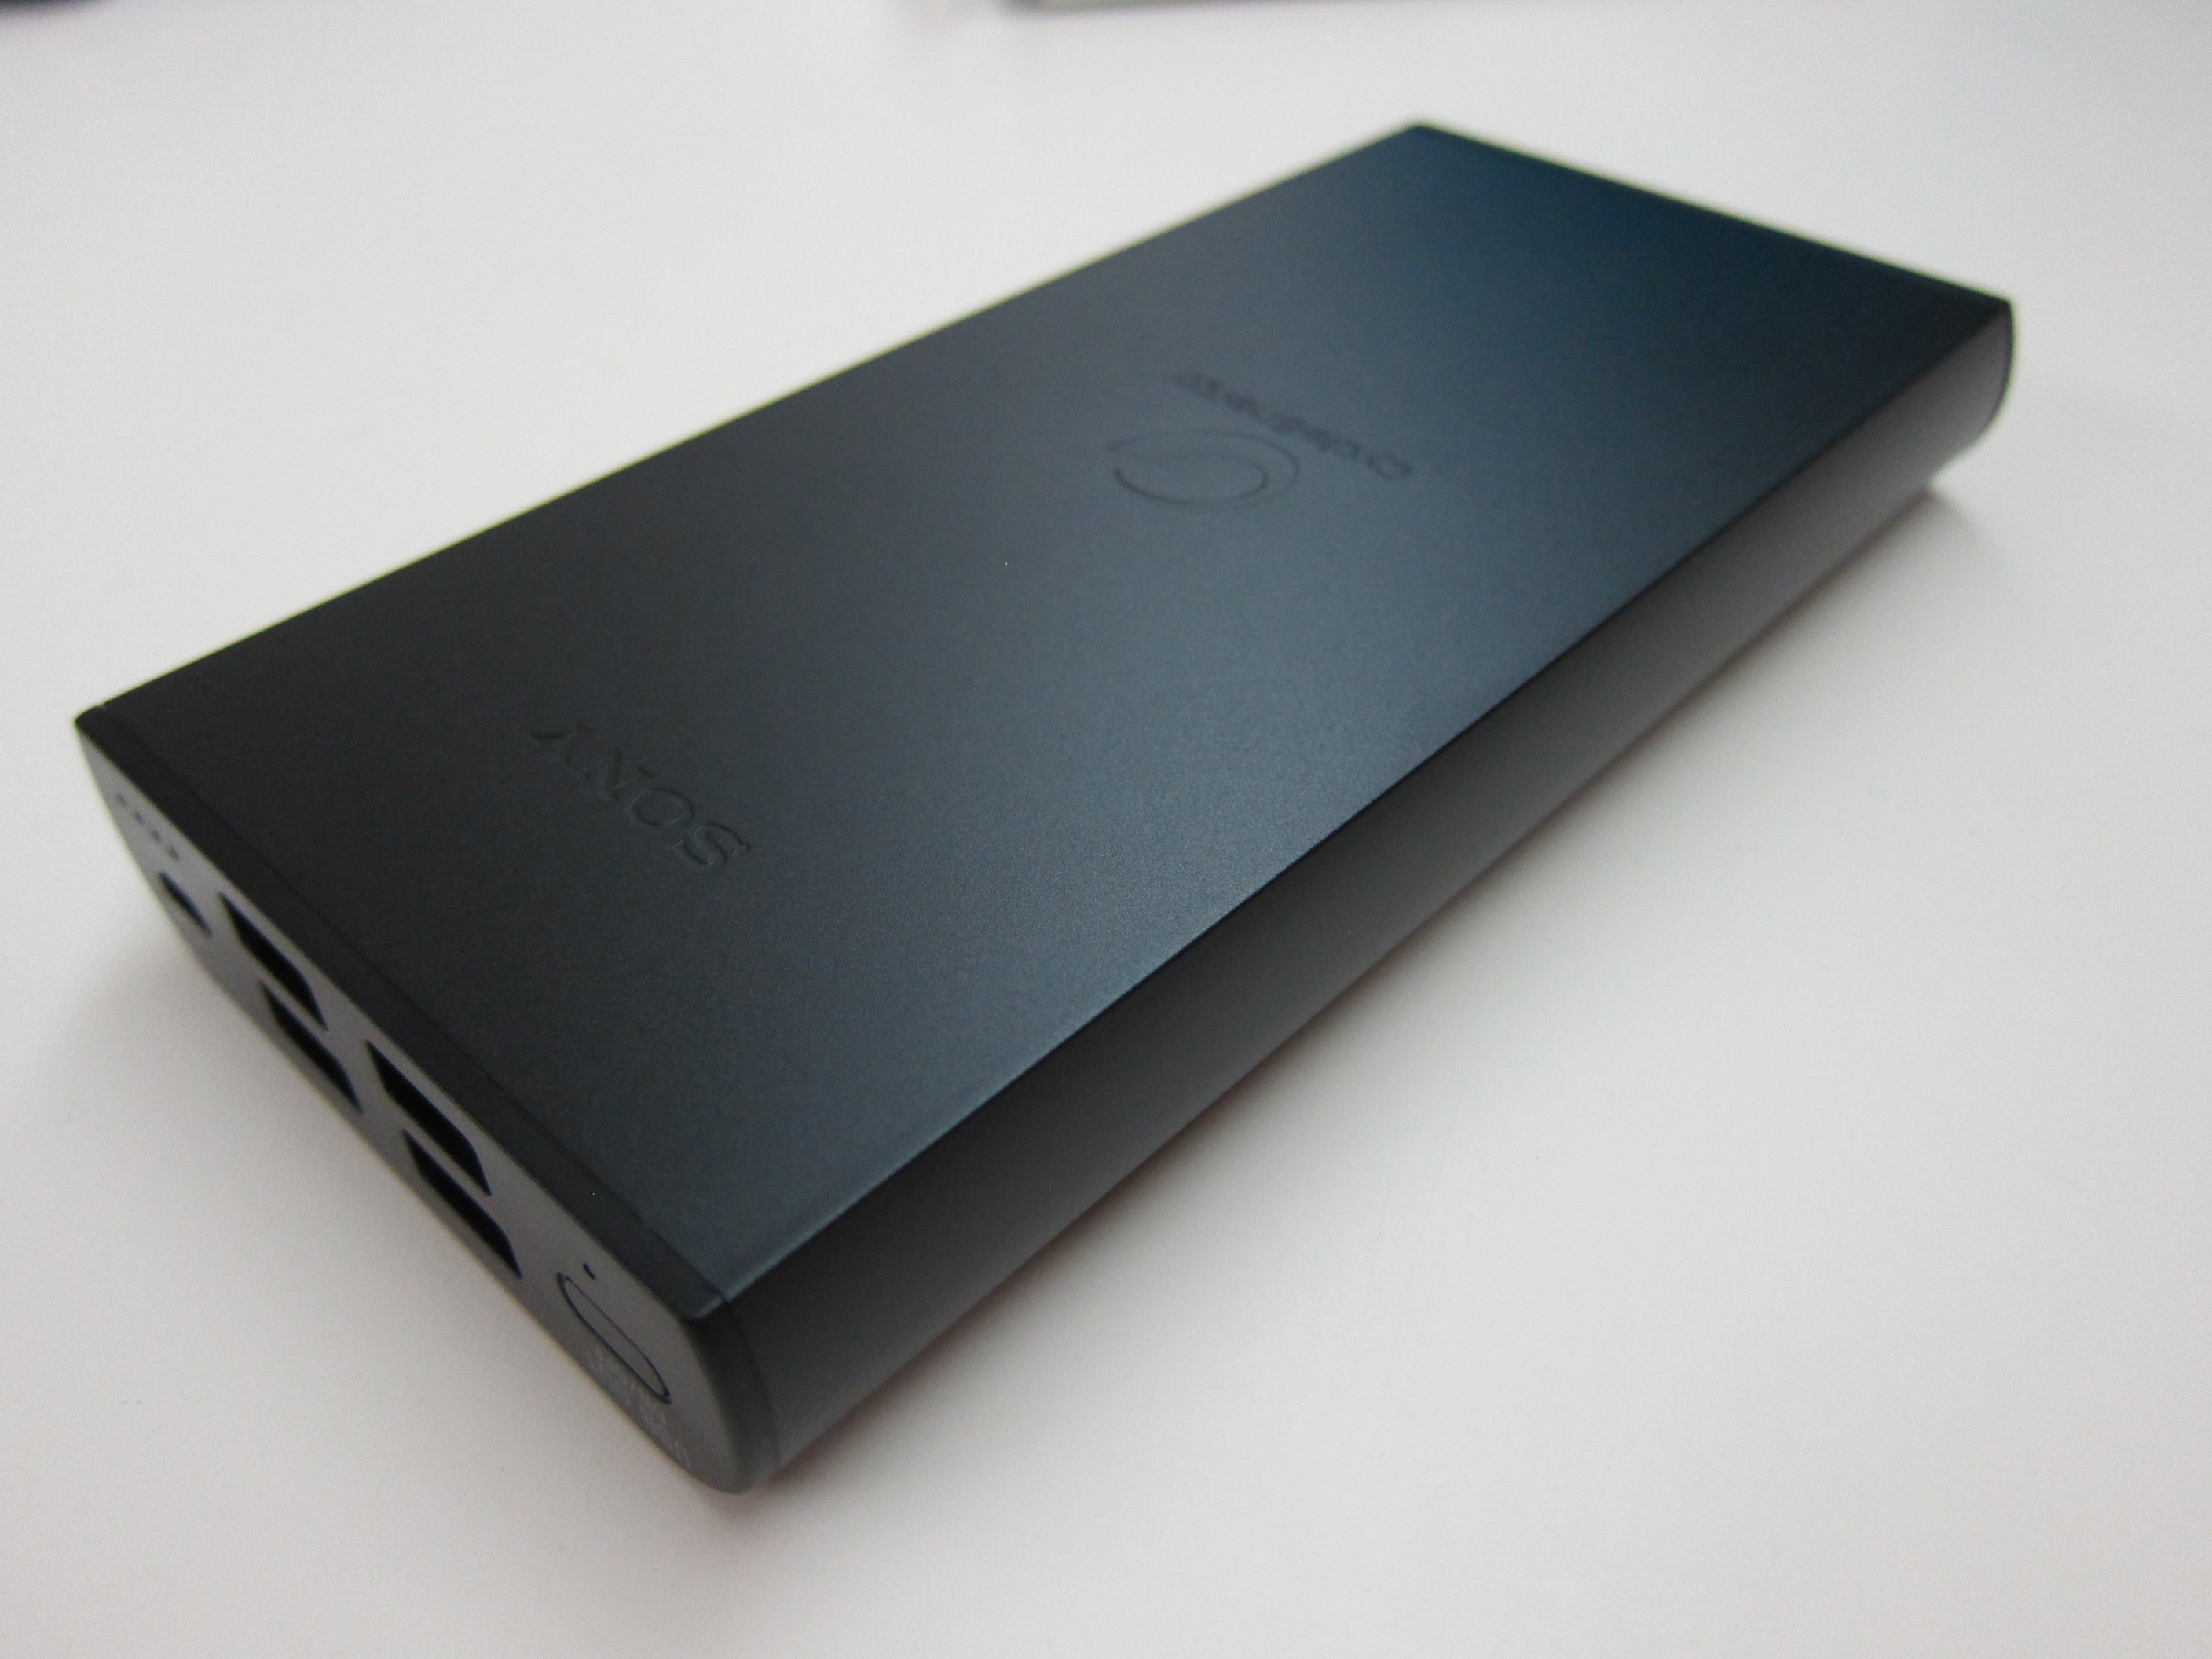 Sony Cp B20 20 000mah Usb Portable Charger Blog